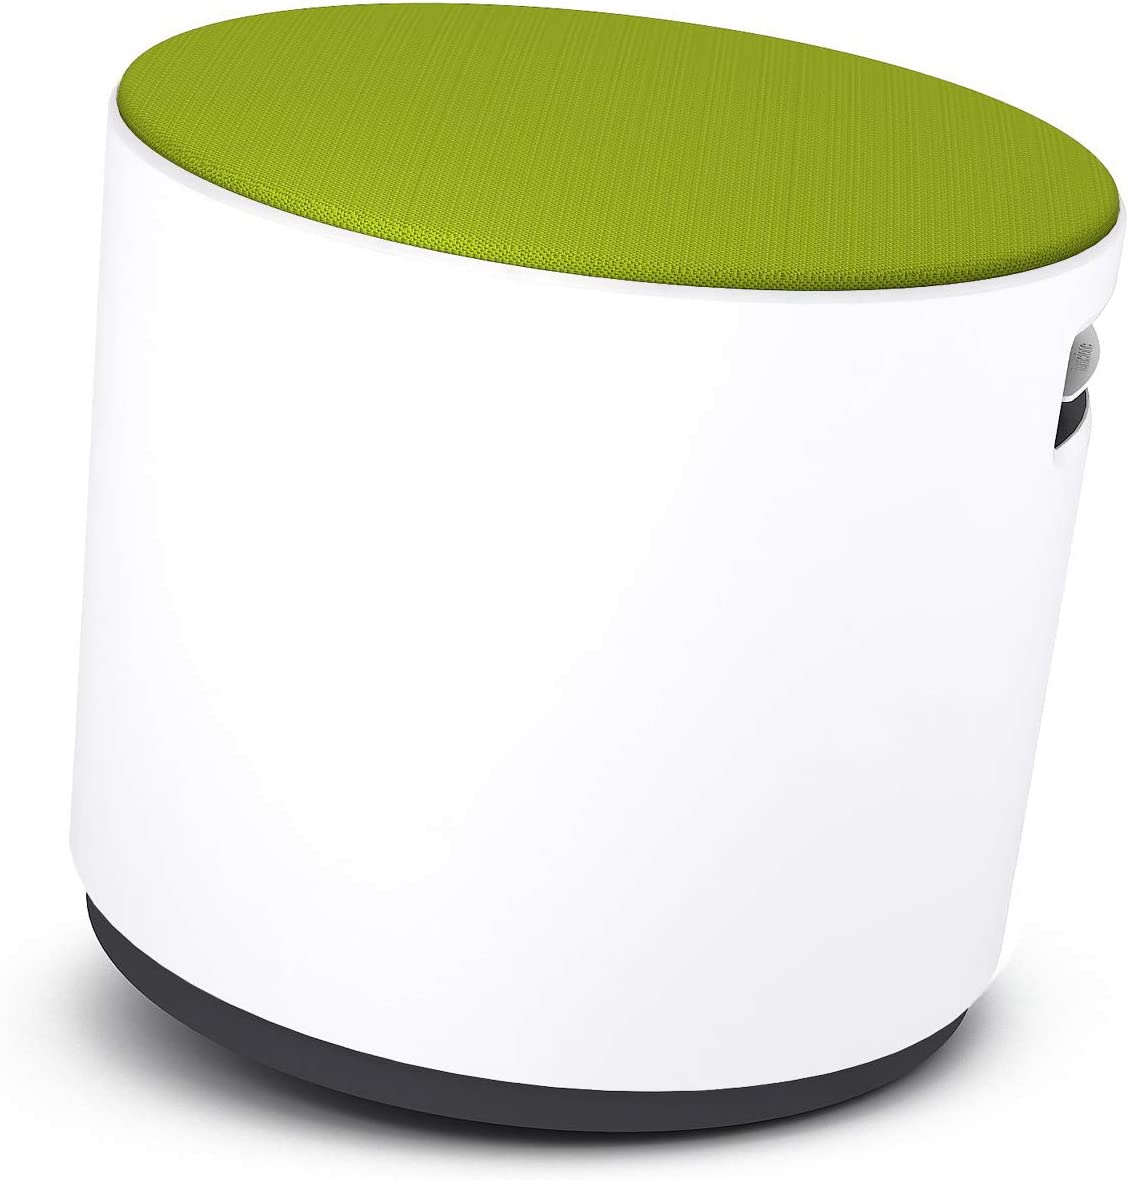 Steelcase Turnstone Buoy, Wasabi Fabric, White